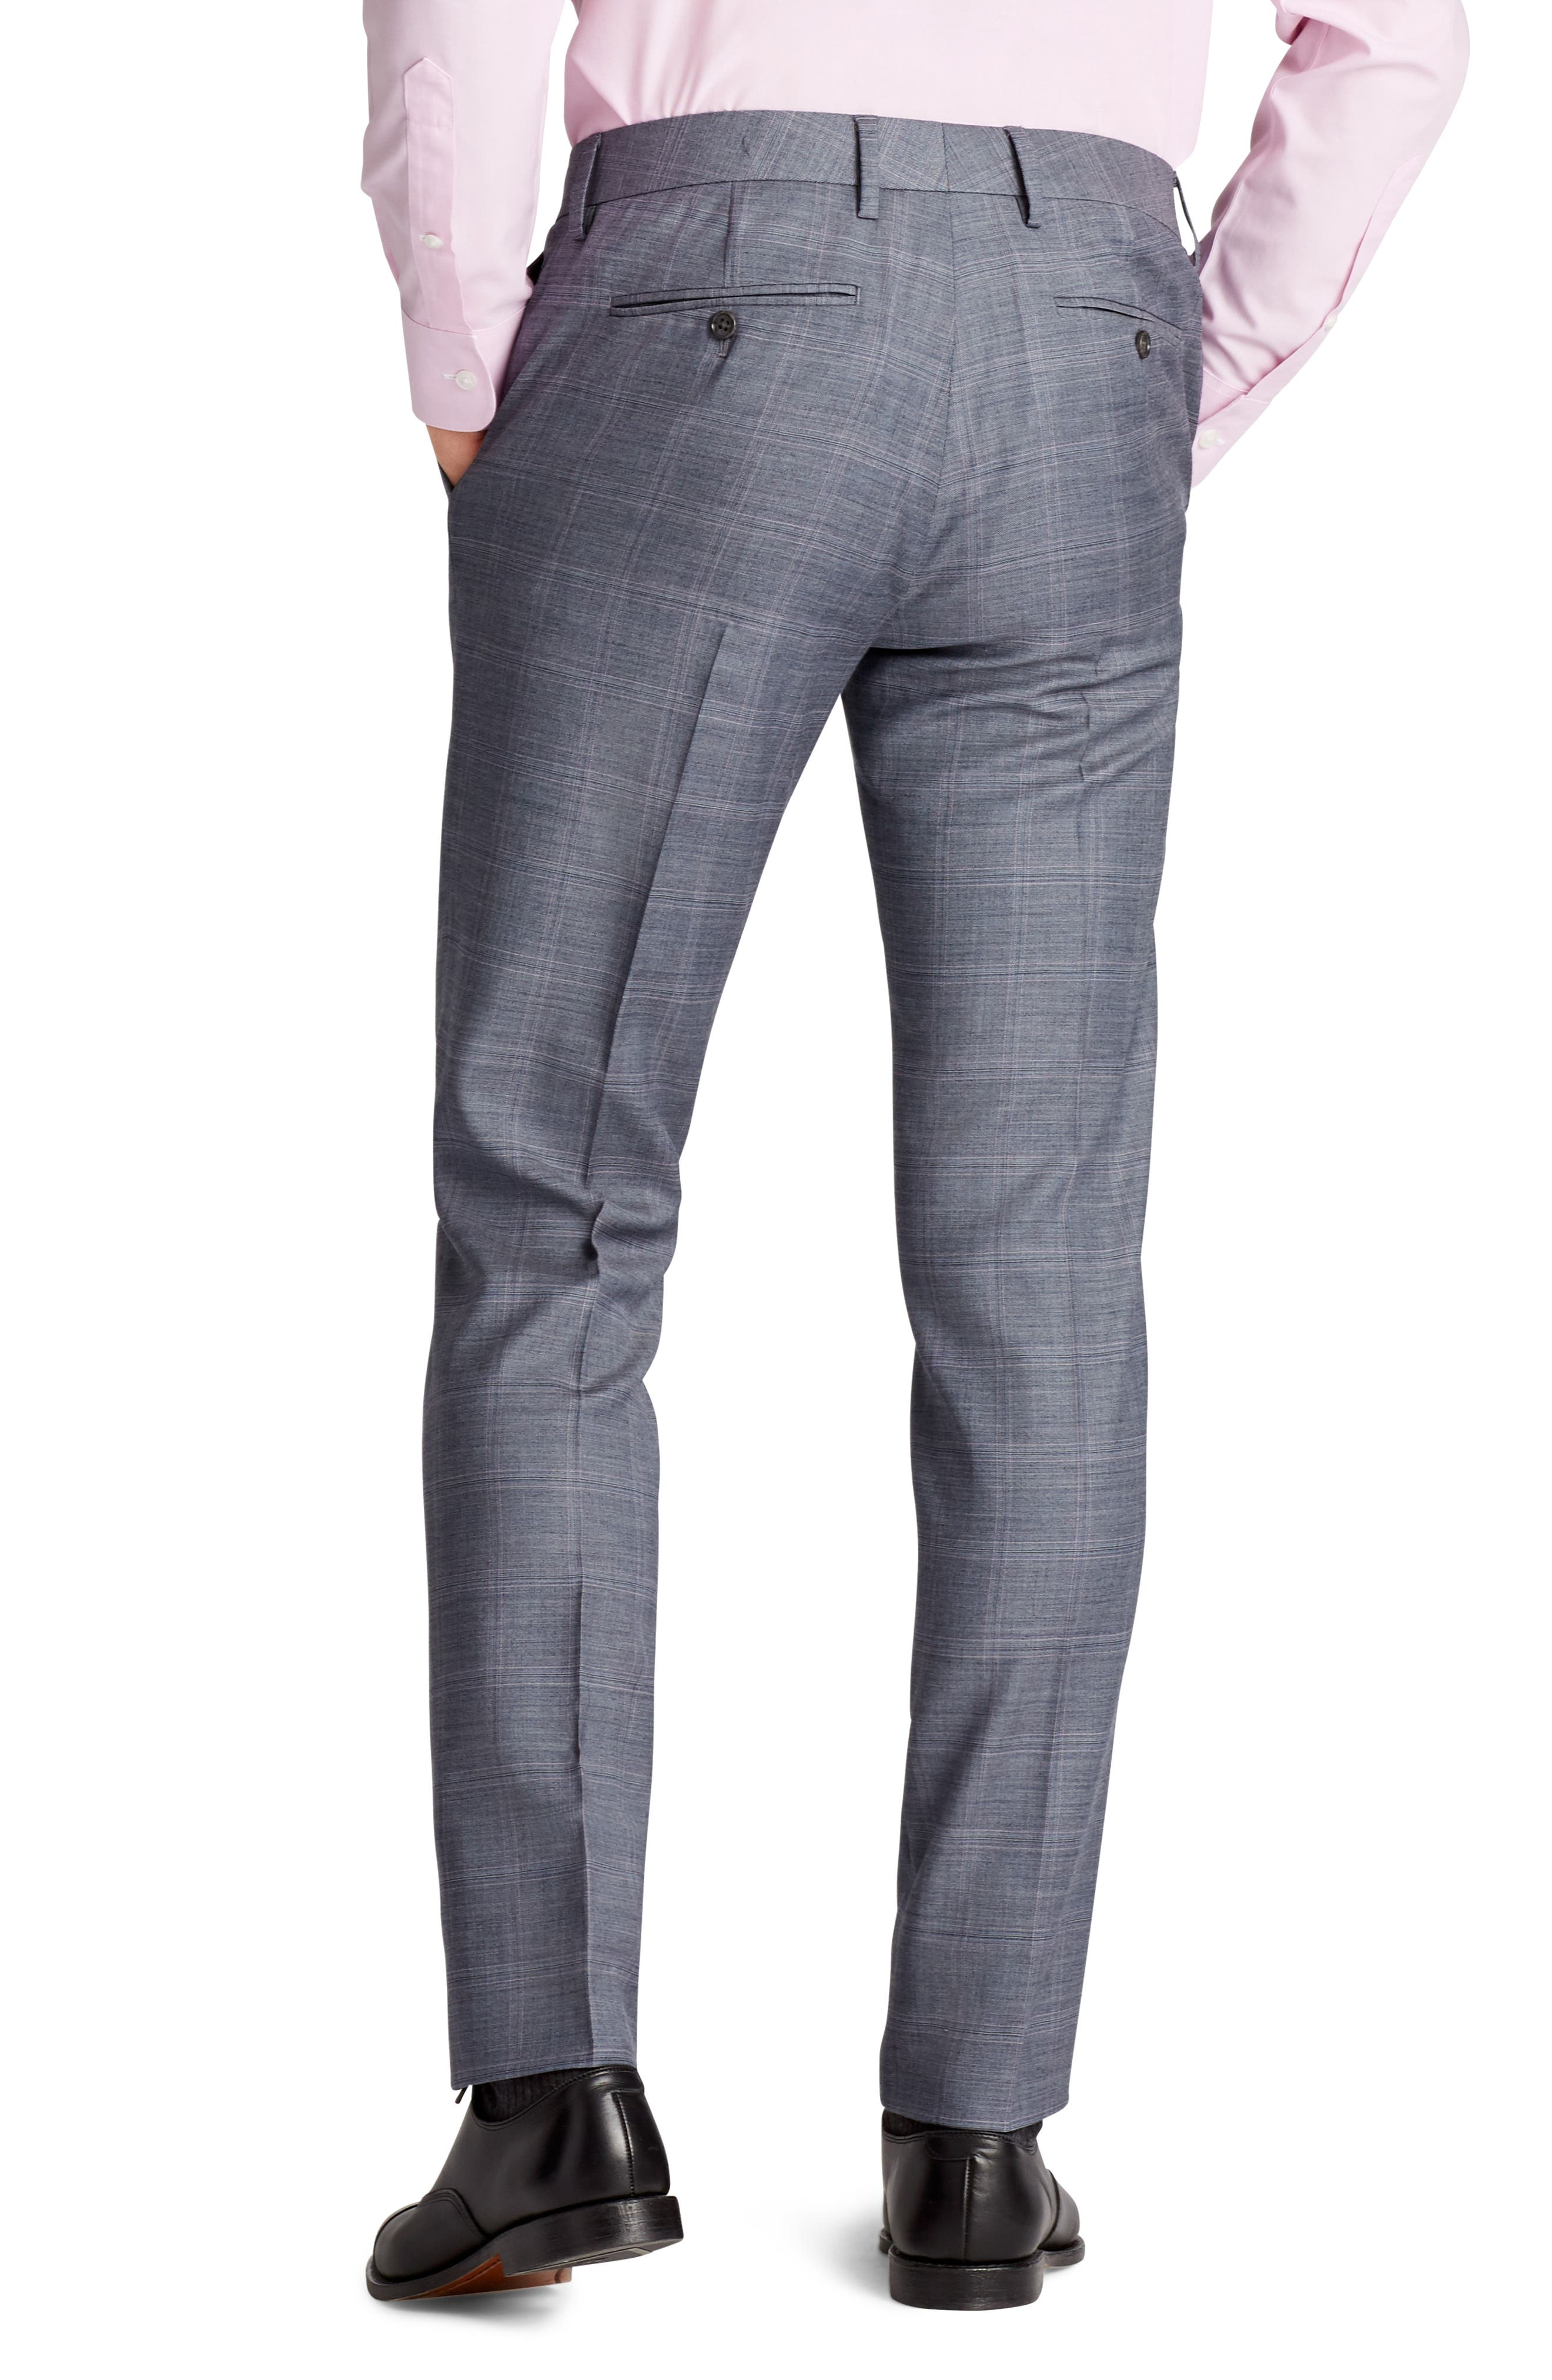 Jetsetter Flat Front Stretch Plaid Wool Trousers,                             Alternate thumbnail 2, color,                             Grey Plaid